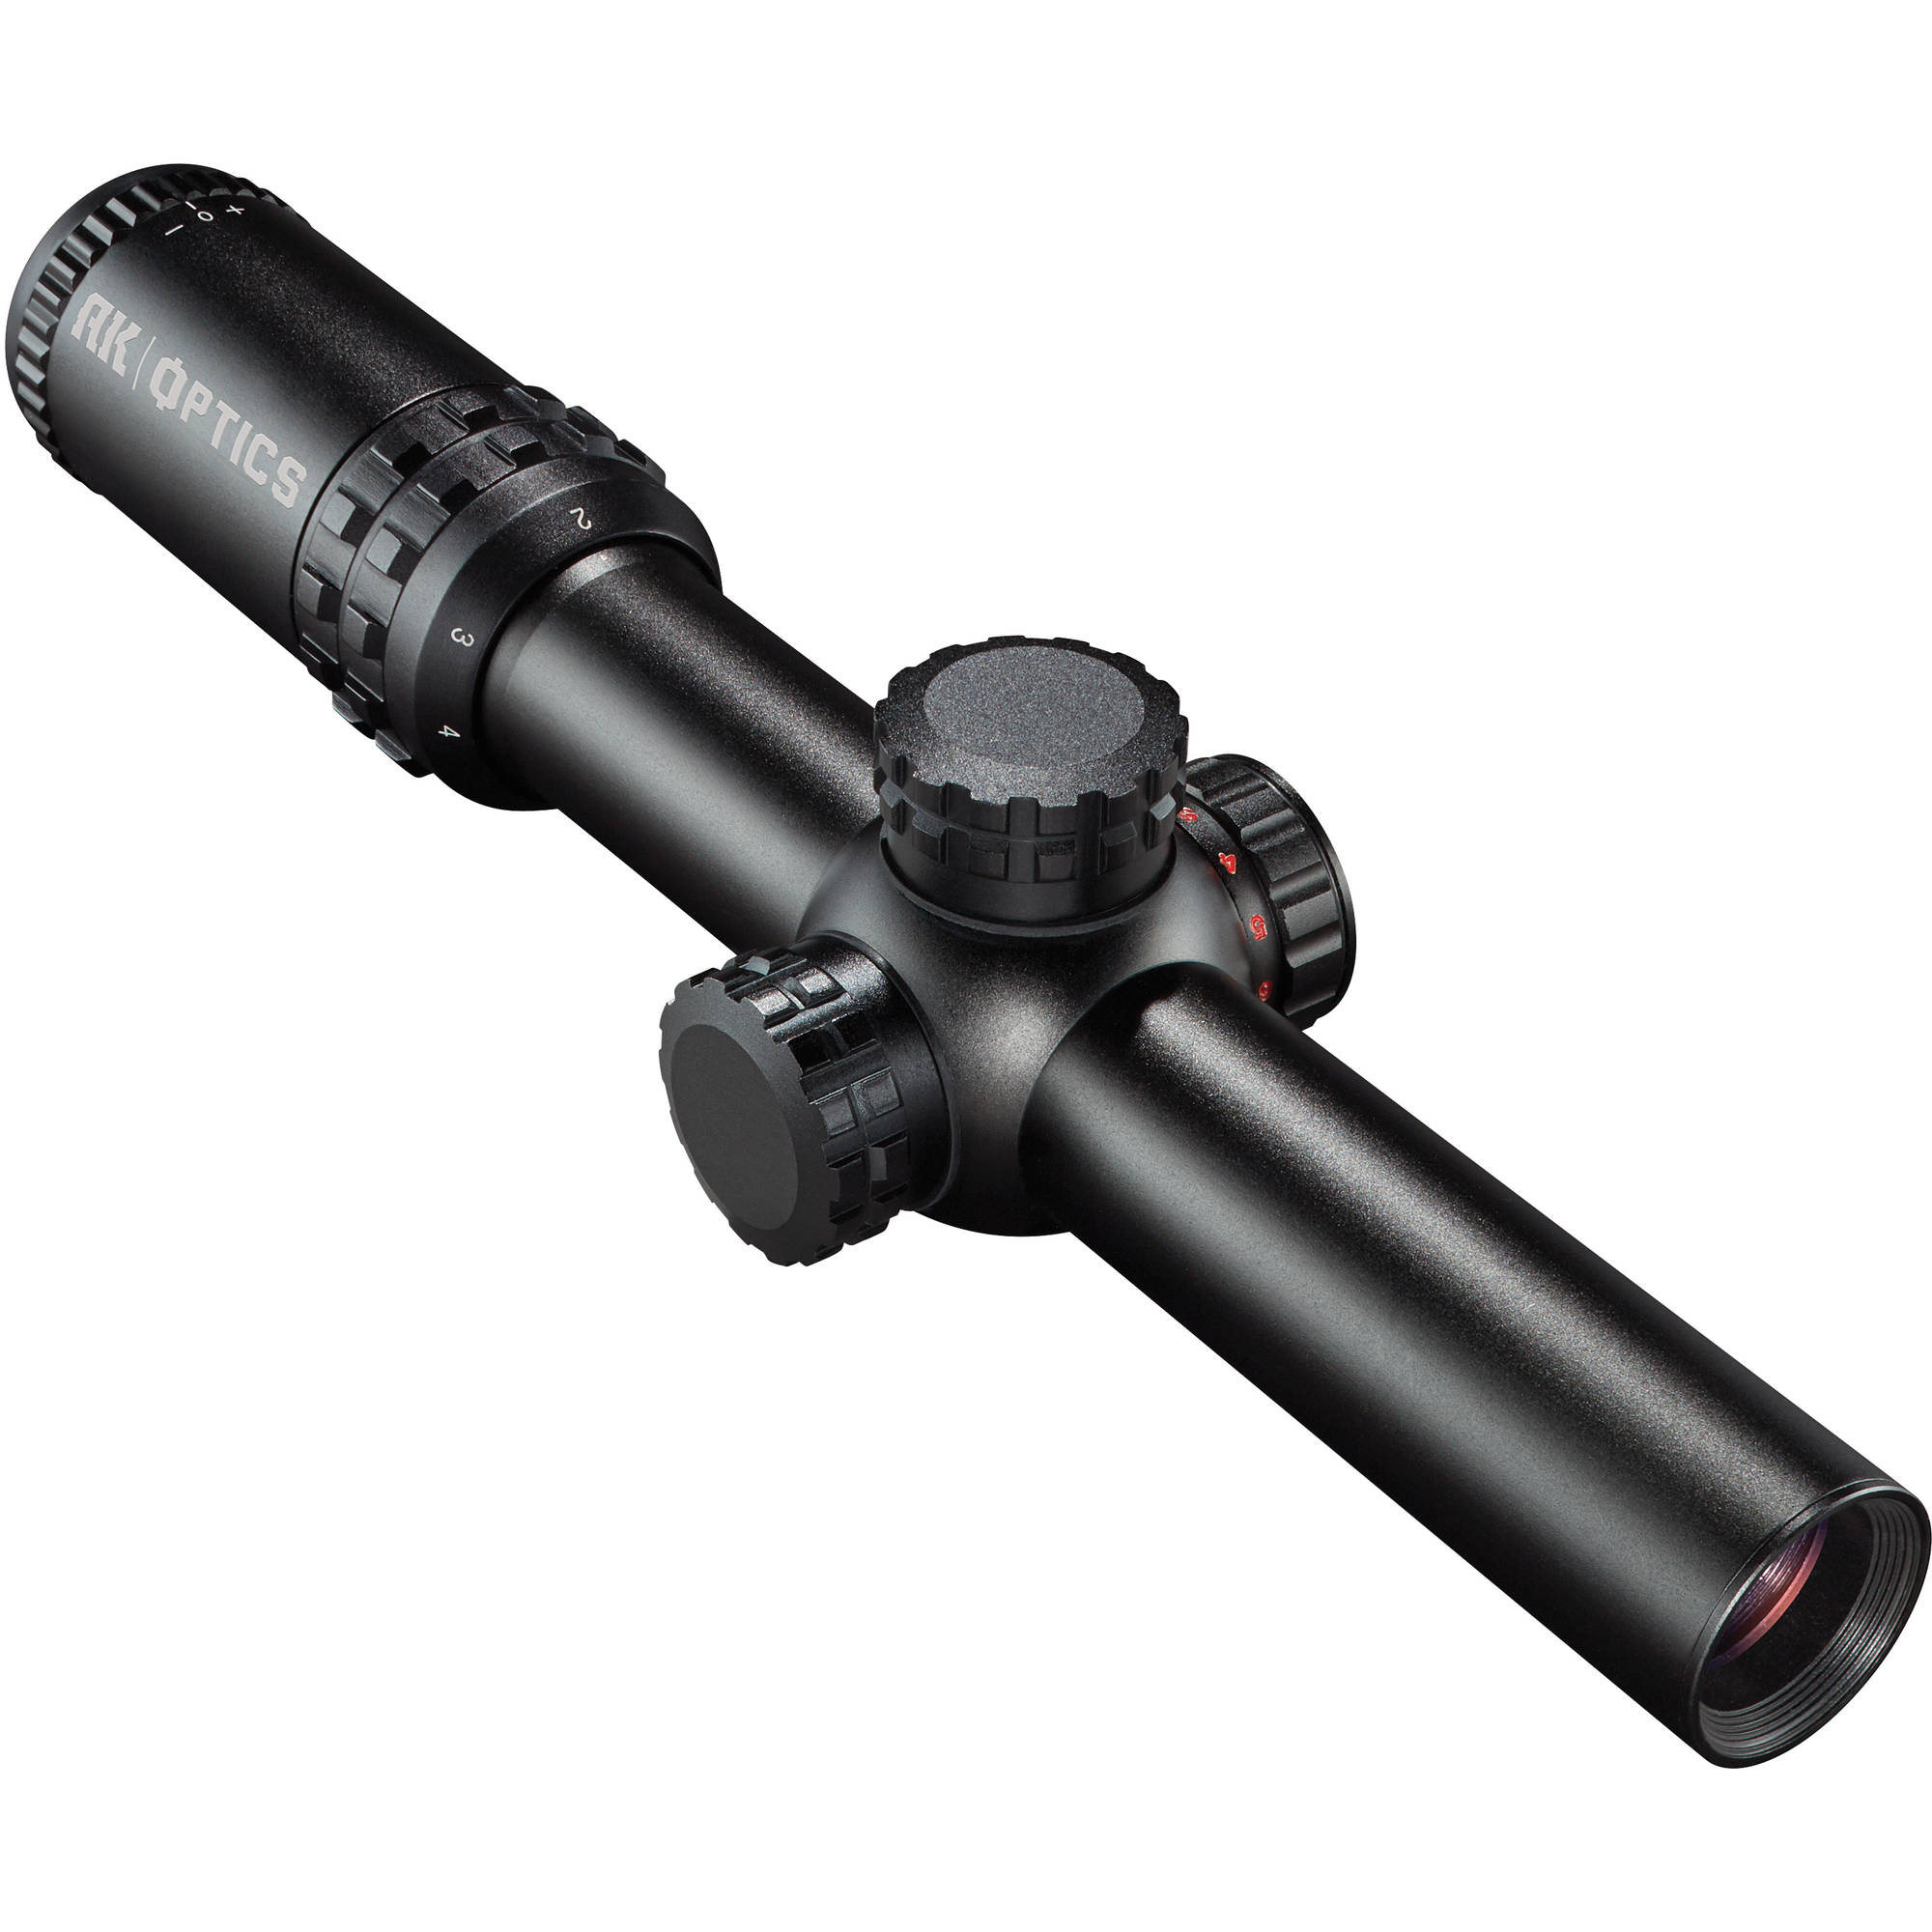 Bushnell AK Optics 1-4x 24mm Riflescope, Matte Finish by Bushnell